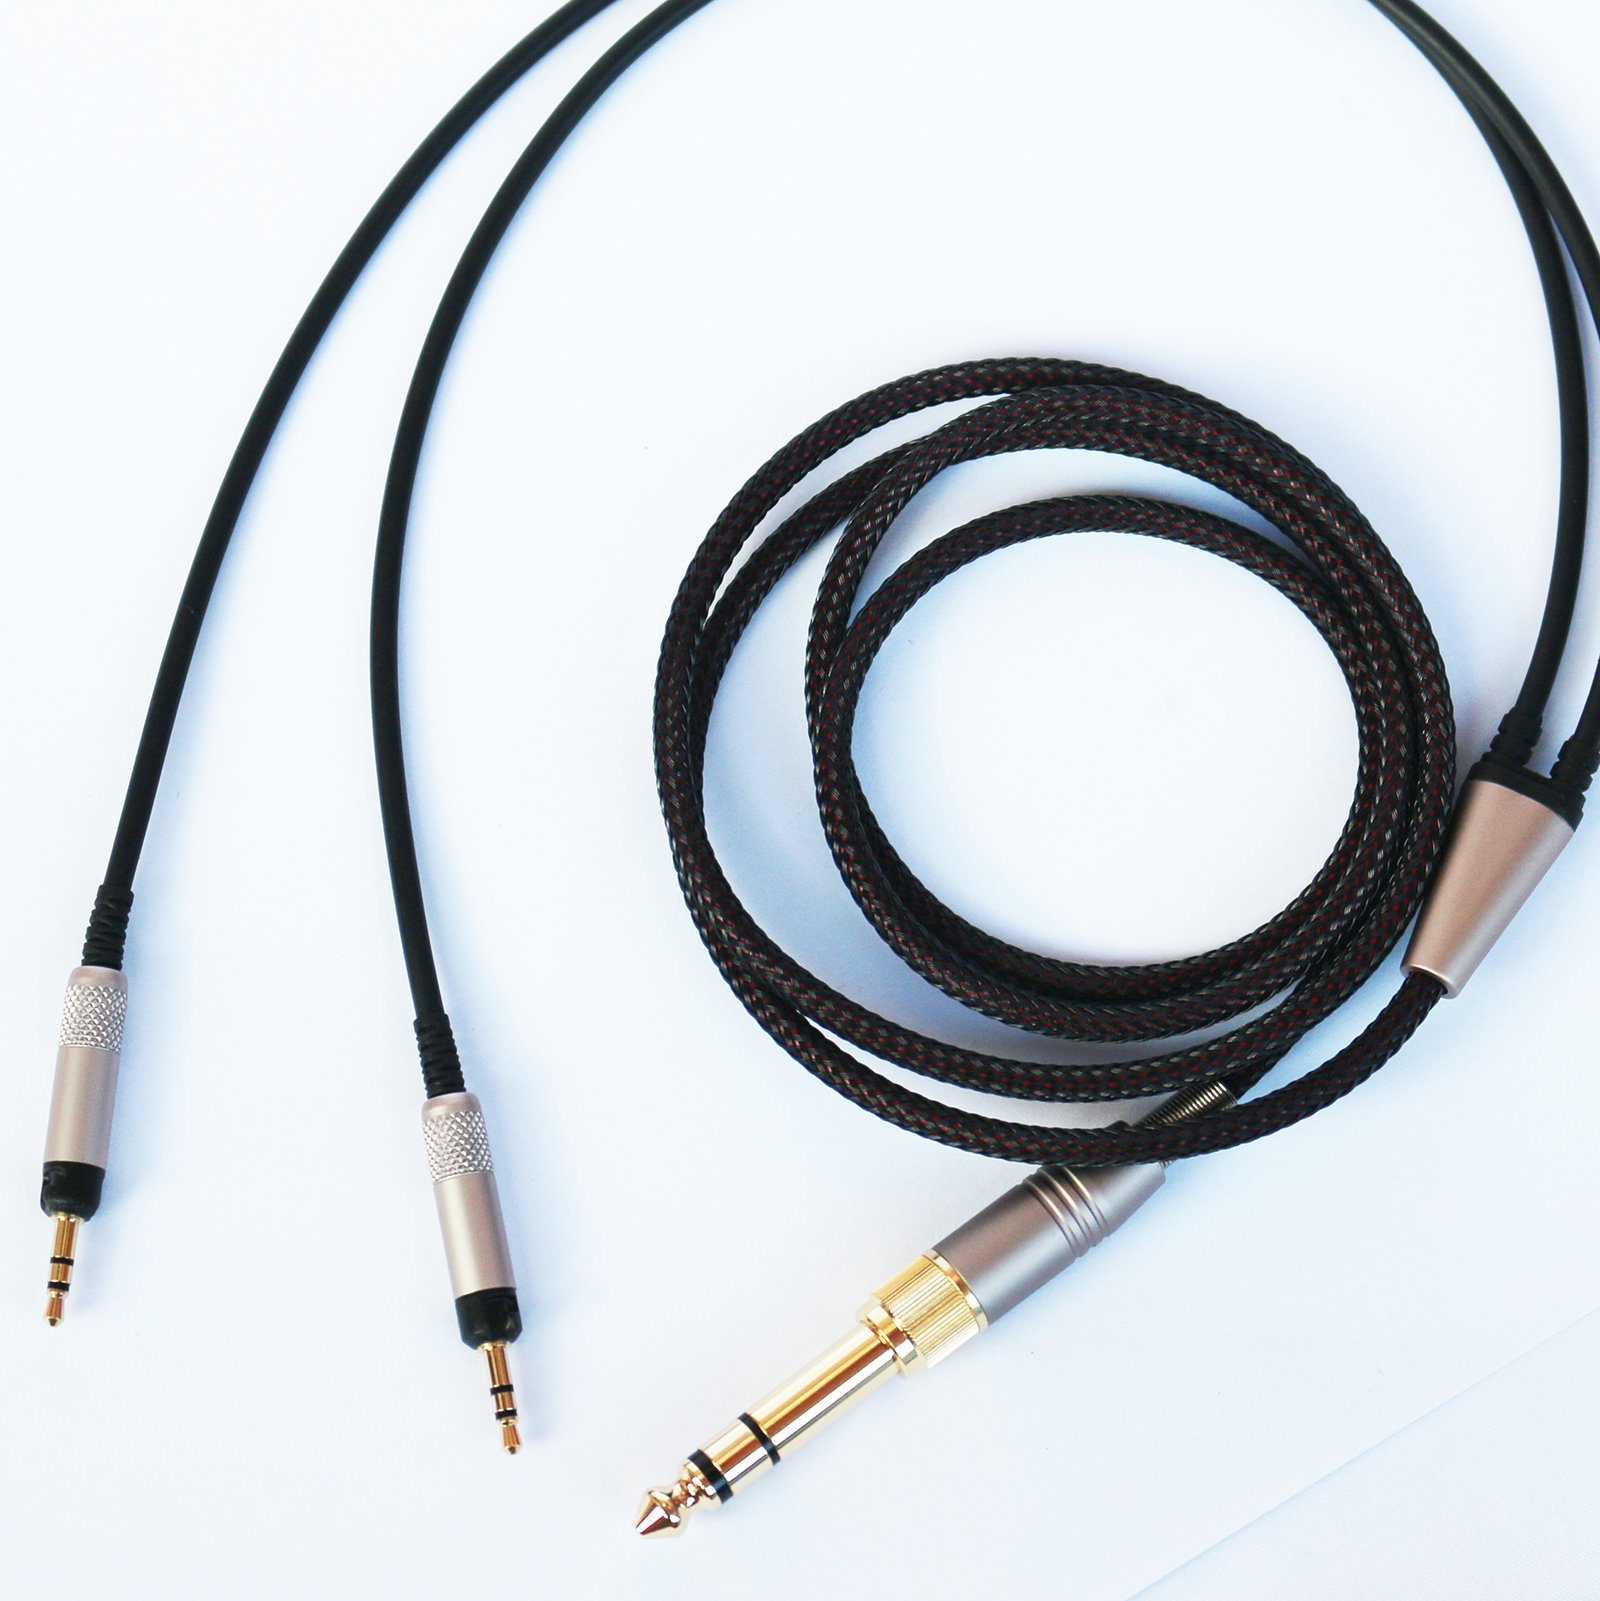 NEOMUSICIA Replacement Upgrade Audio Cable for Audio-Technica ATH-R70x Professional Headphone 2m/6FT